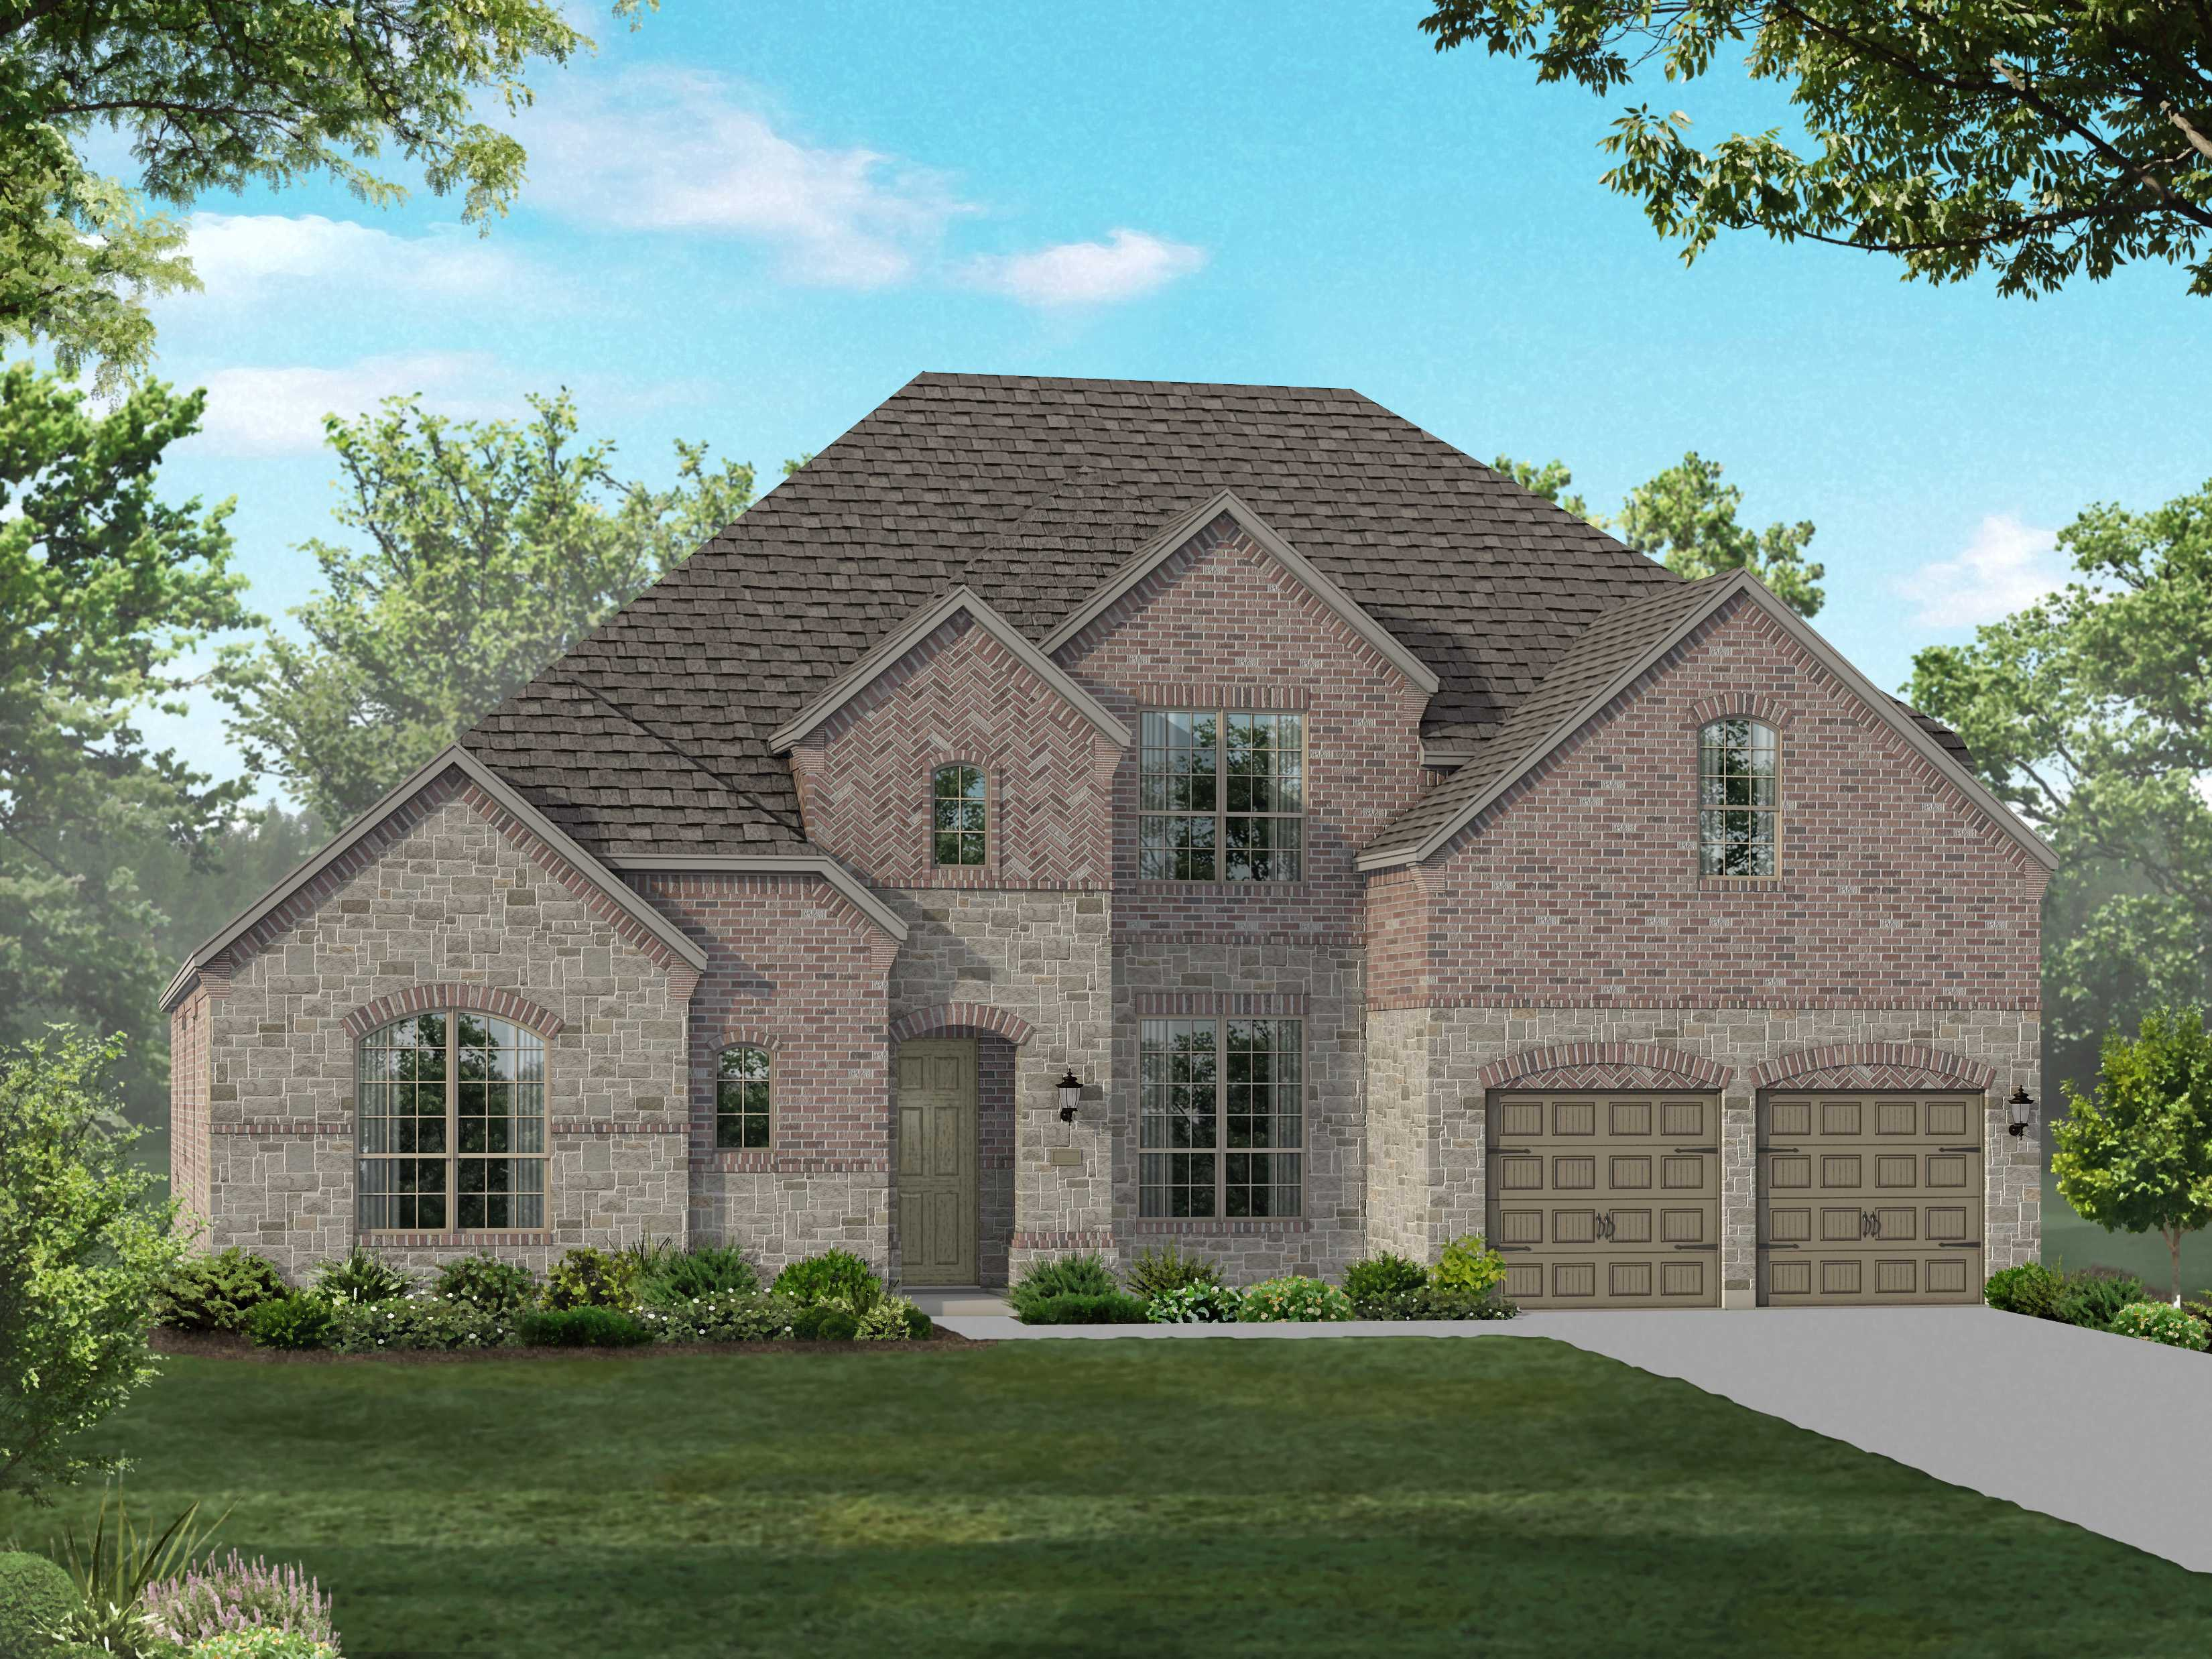 Single Family for Sale at Front Gate In Fair Oaks Ranch 90s - Plan 296 28702 Hidden Gate Fair Oaks Ranch, Texas 78015 United States